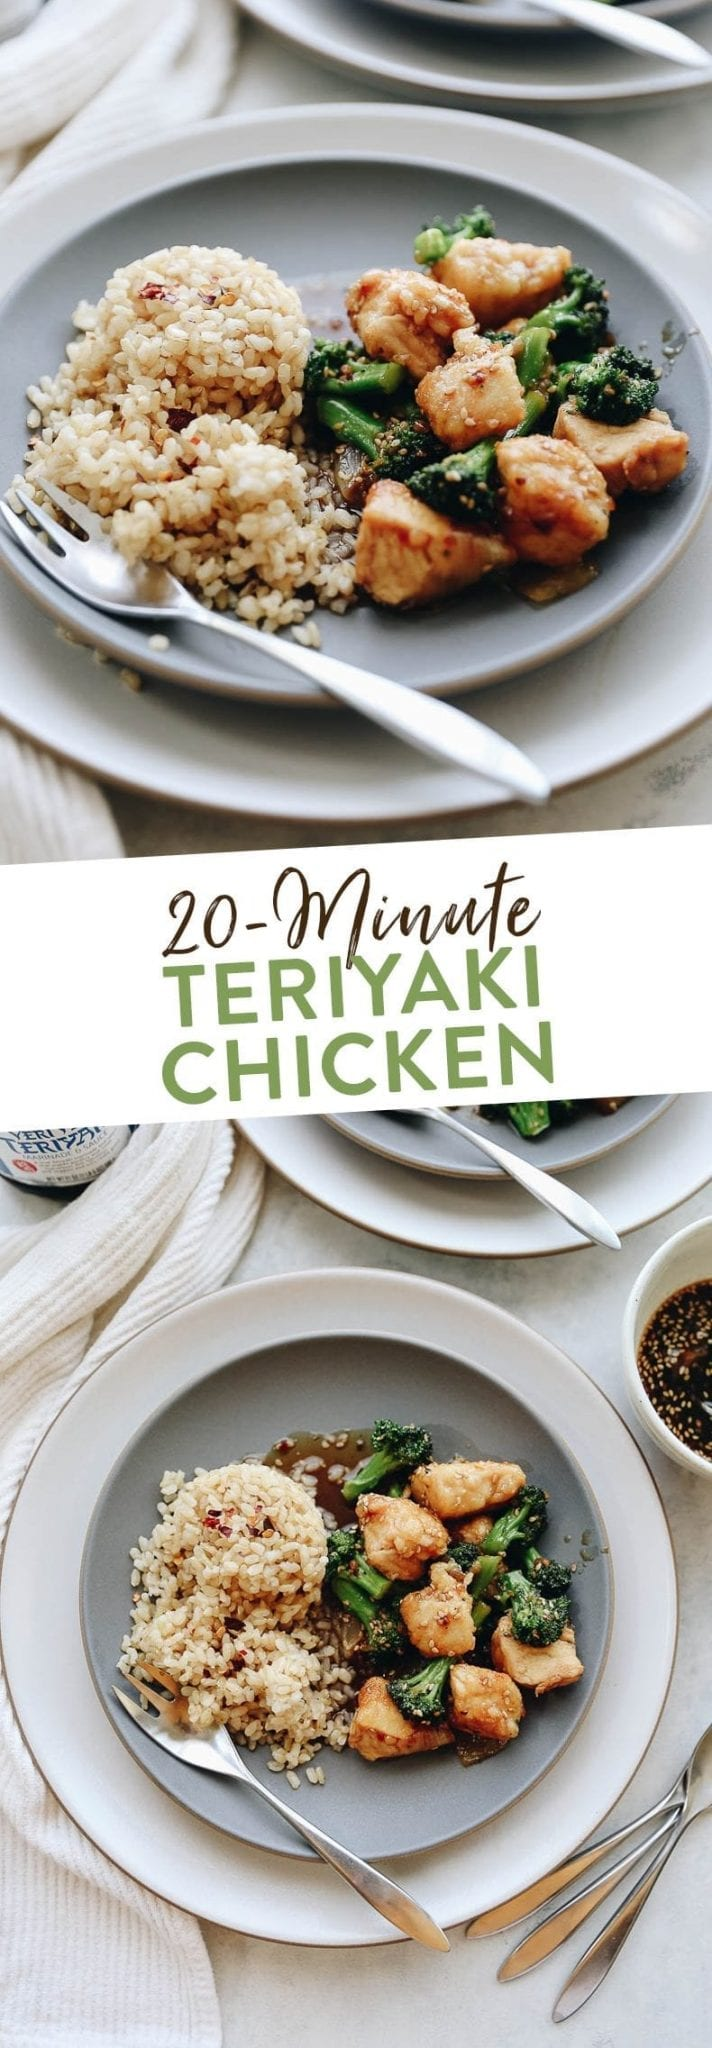 Healthy 20-Minute Teriyaki Chicken - an easy weeknight dinner recipe that's ready in under 20 minutes. The whole family will love it!